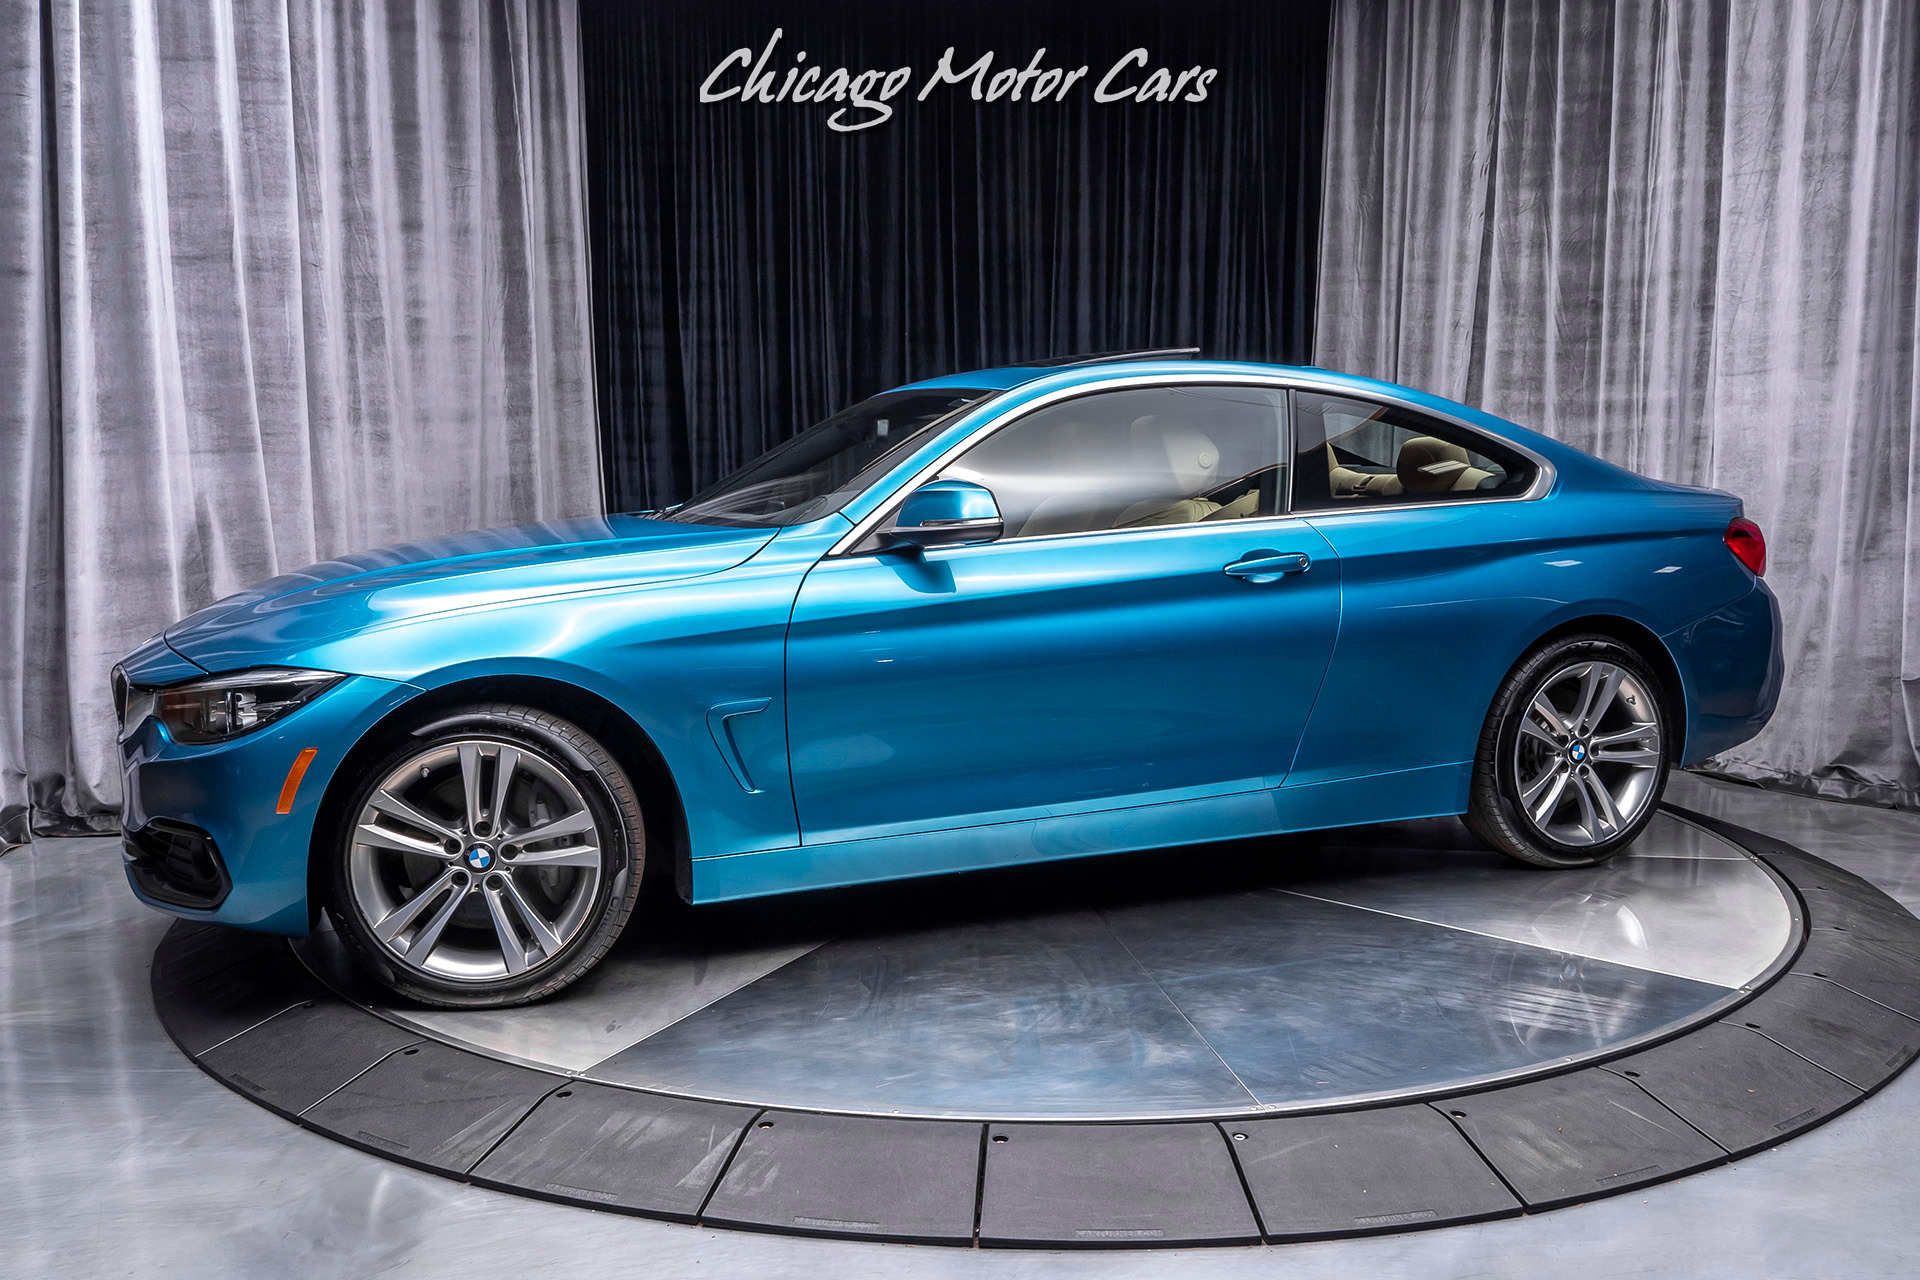 Used 2019 Bmw 440i Xdrive Coupe Msrp 56k For Sale 38 800